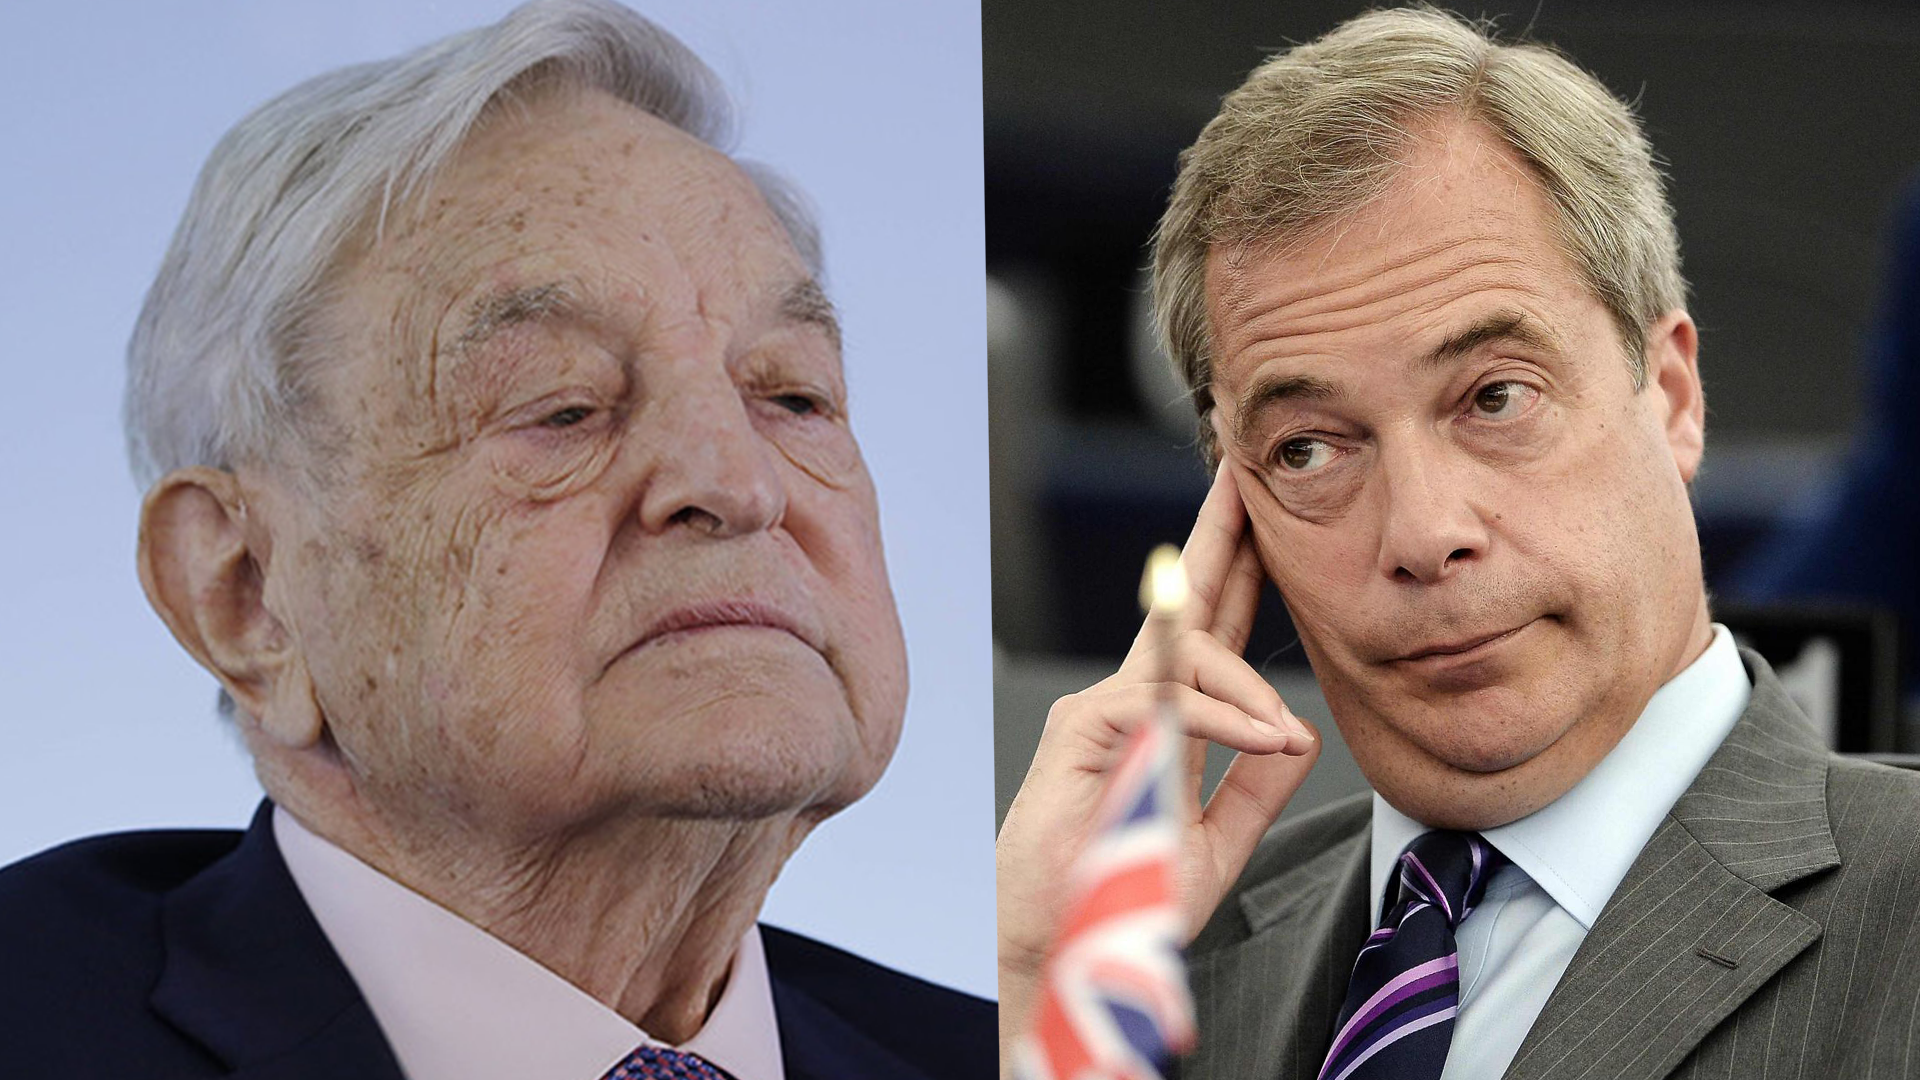 FARAGE: Constitutional Crisis if 'Theresa the Appeaser' allows George Soros to halt or water down Brexit